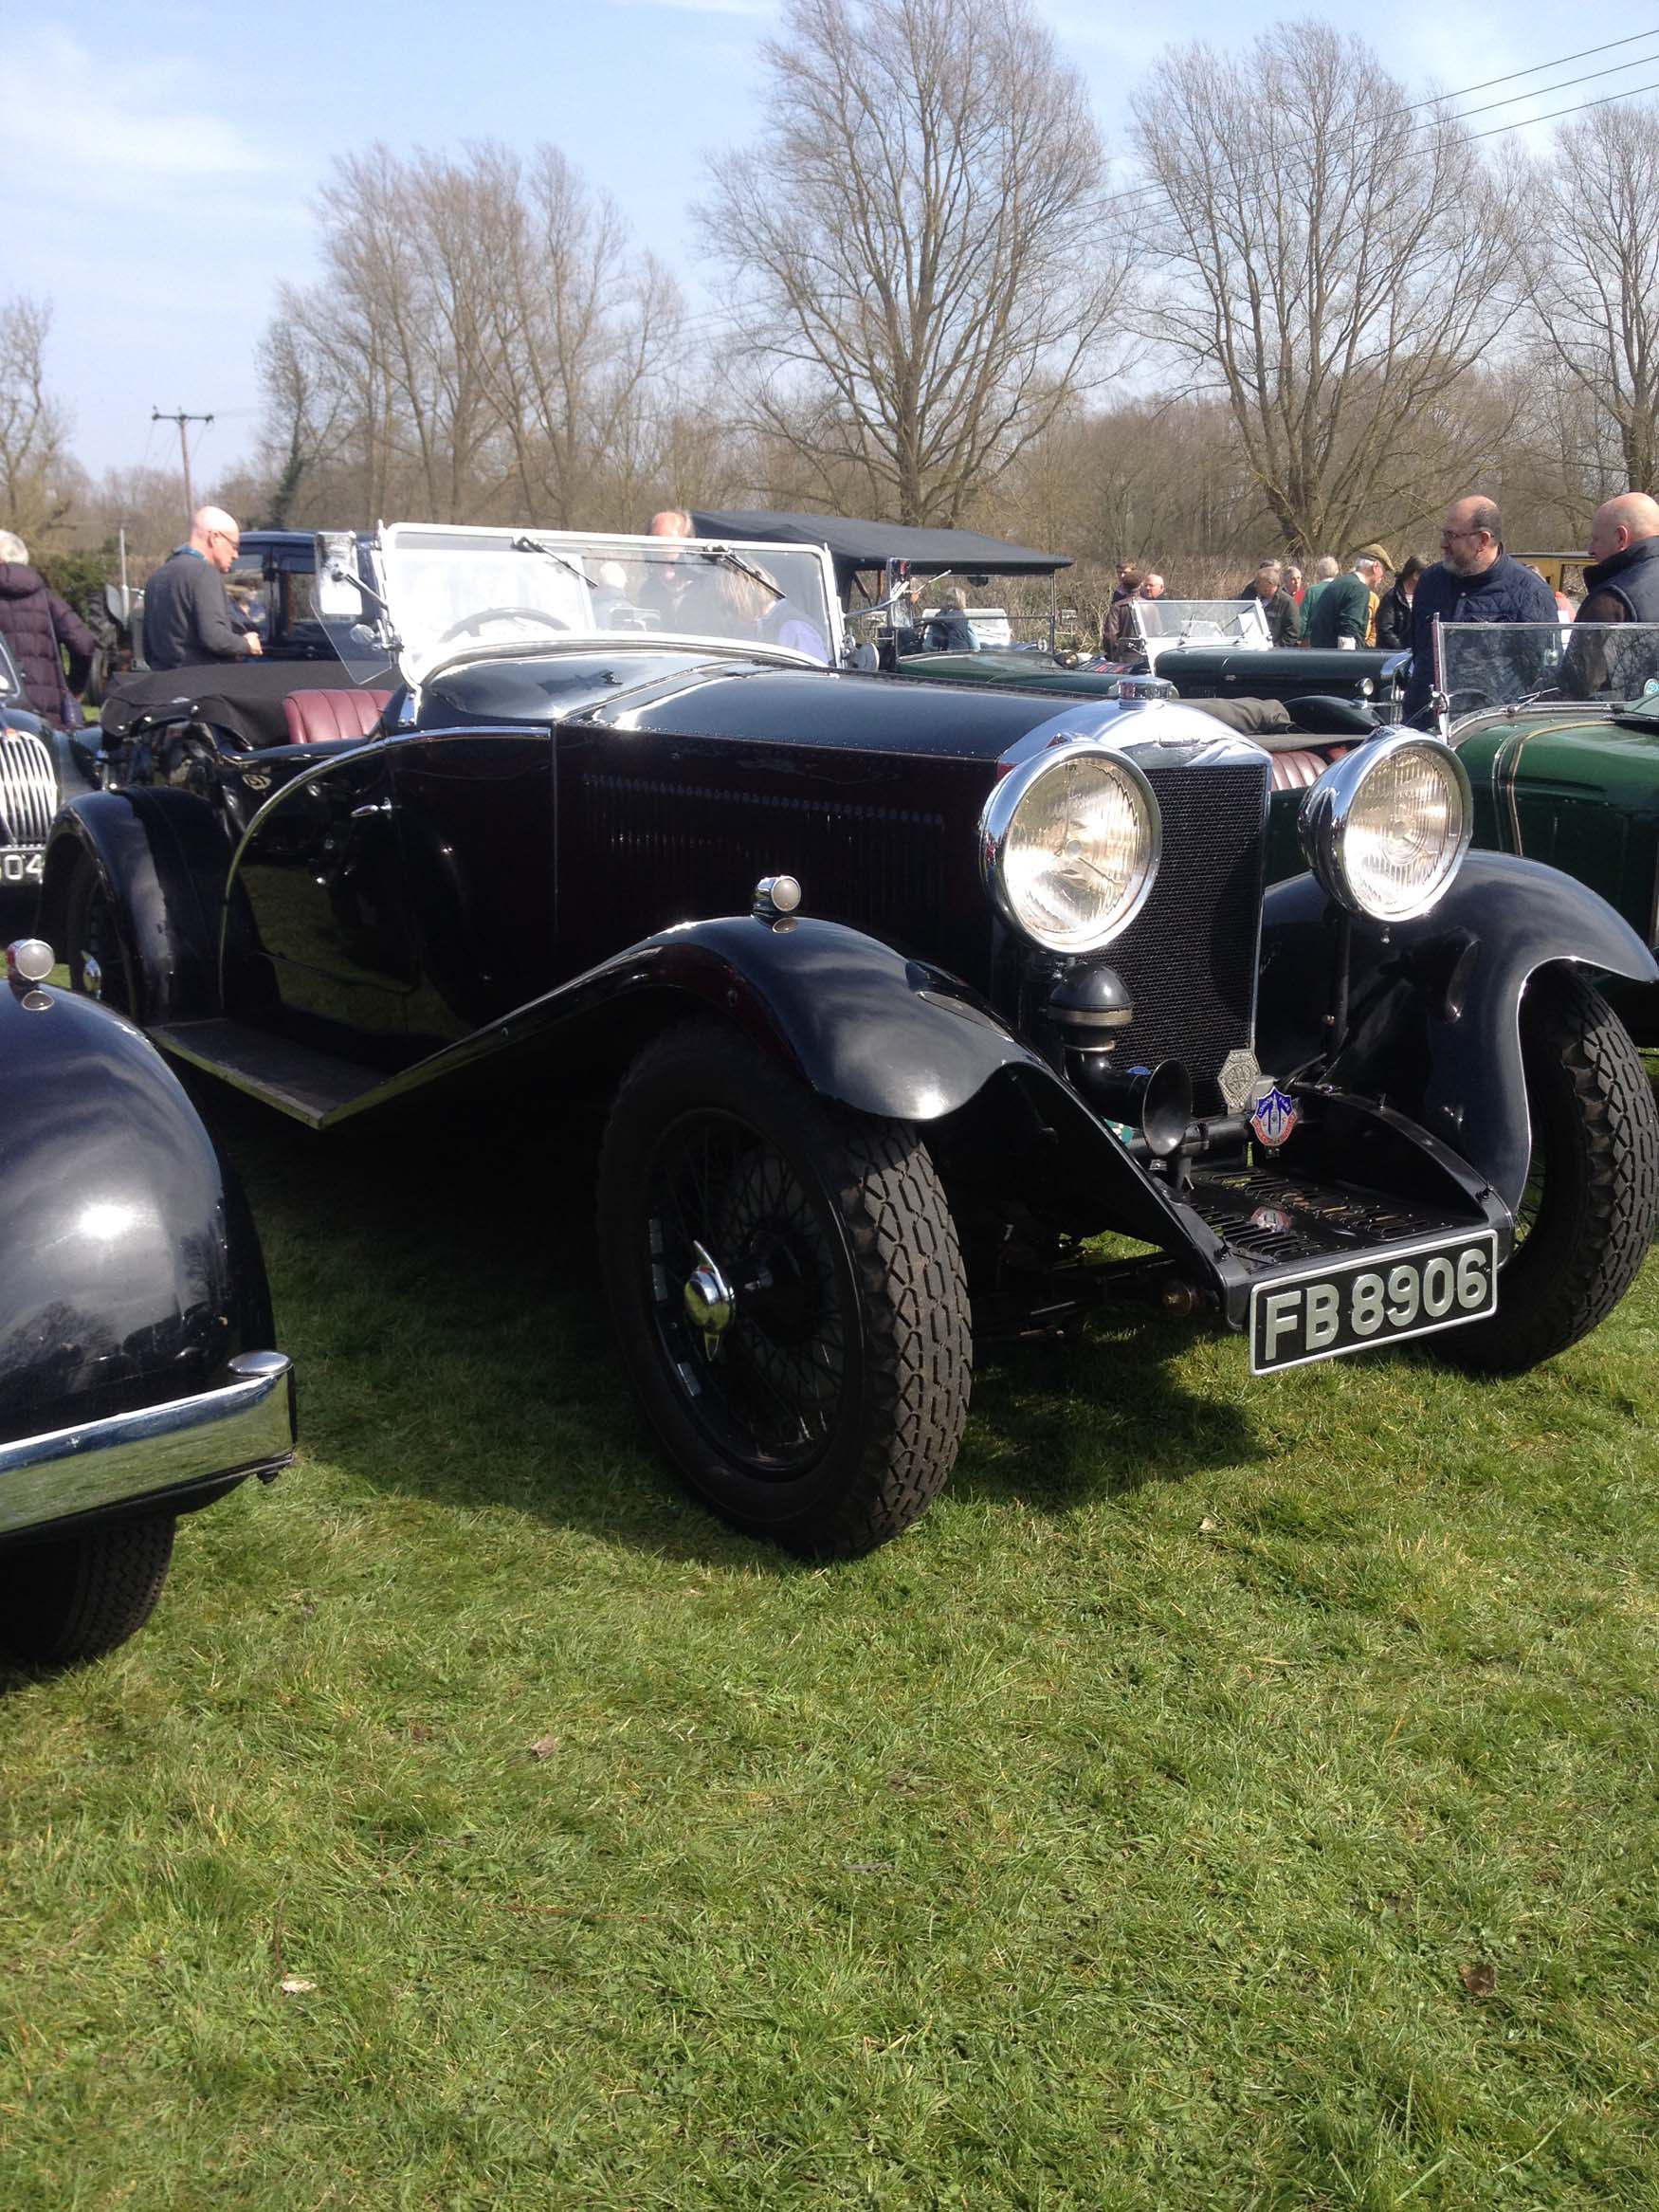 Building A Car Special Builders Notes Page 14 Austin Seven Wiring Diagram Project X Is Now In Full Swing So These Trips Out And Stuff General Have Taken Back Seat The Front Wings For 7 Are Still Waiting To